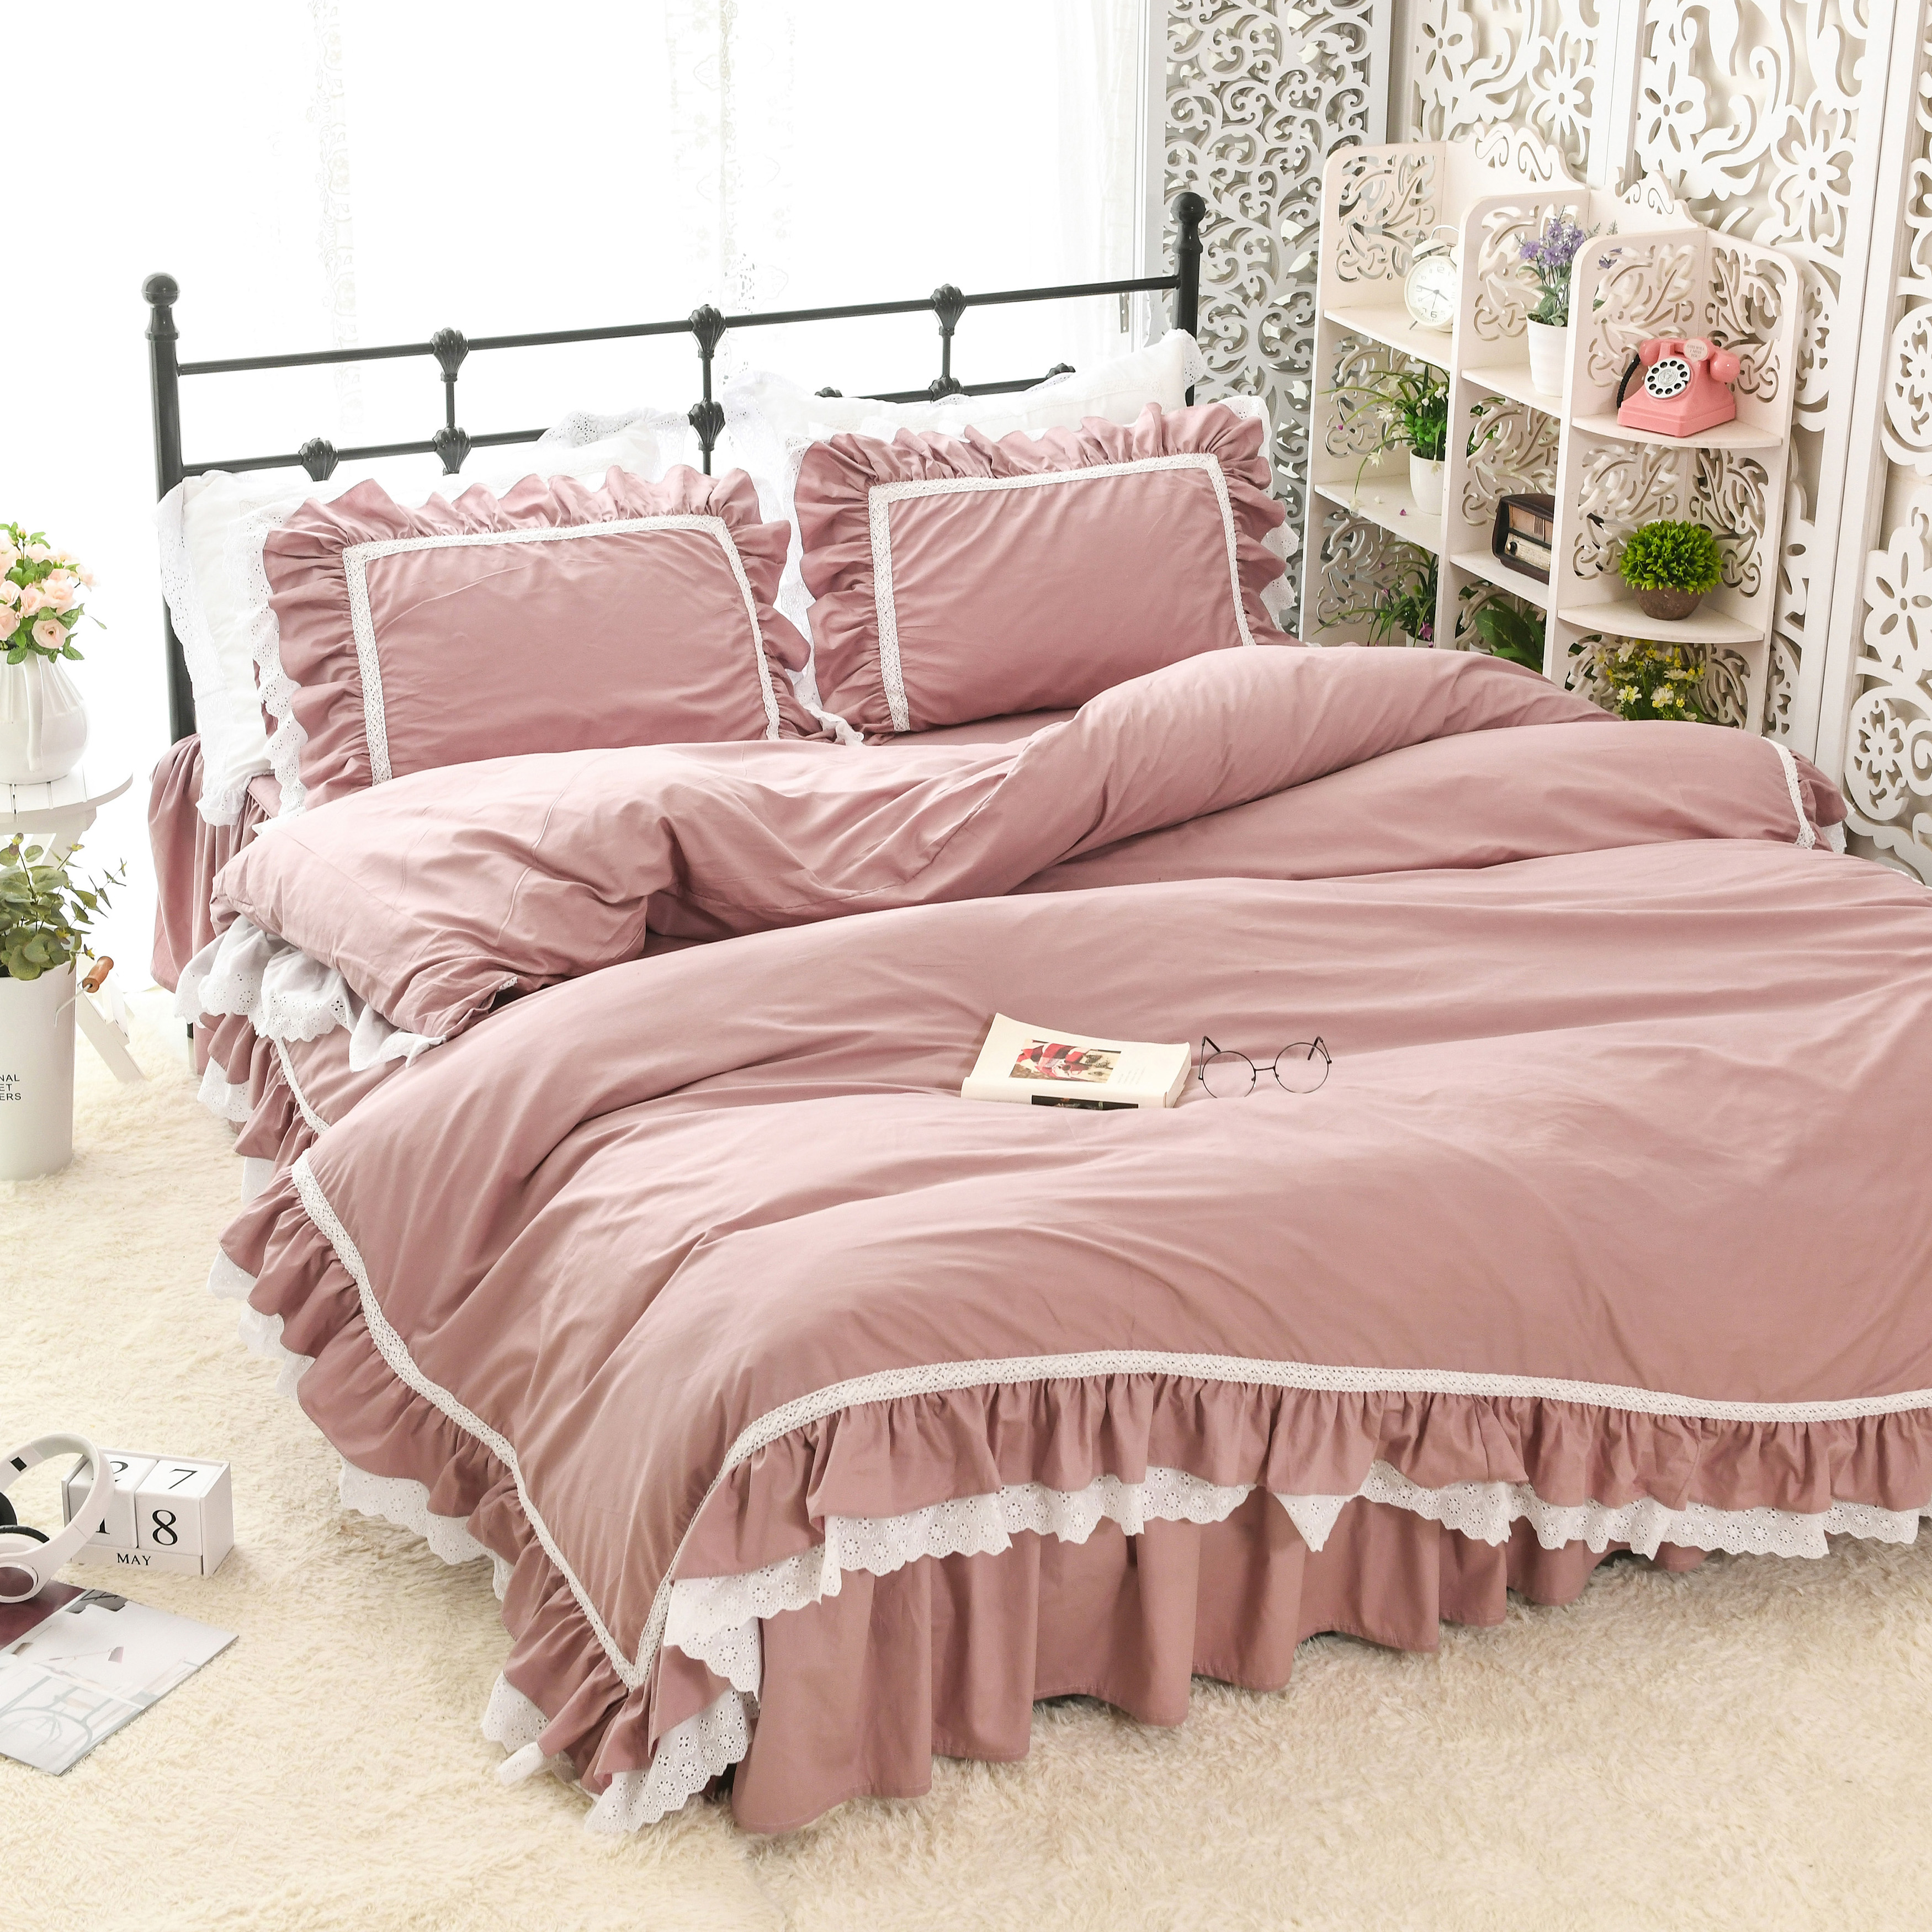 Pure cotton princess wind net red bed skirt lotus leaf embroidered quilt ruffled bed skirtPure cotton princess wind net red bed skirt lotus leaf embroidered quilt ruffled bed skirt